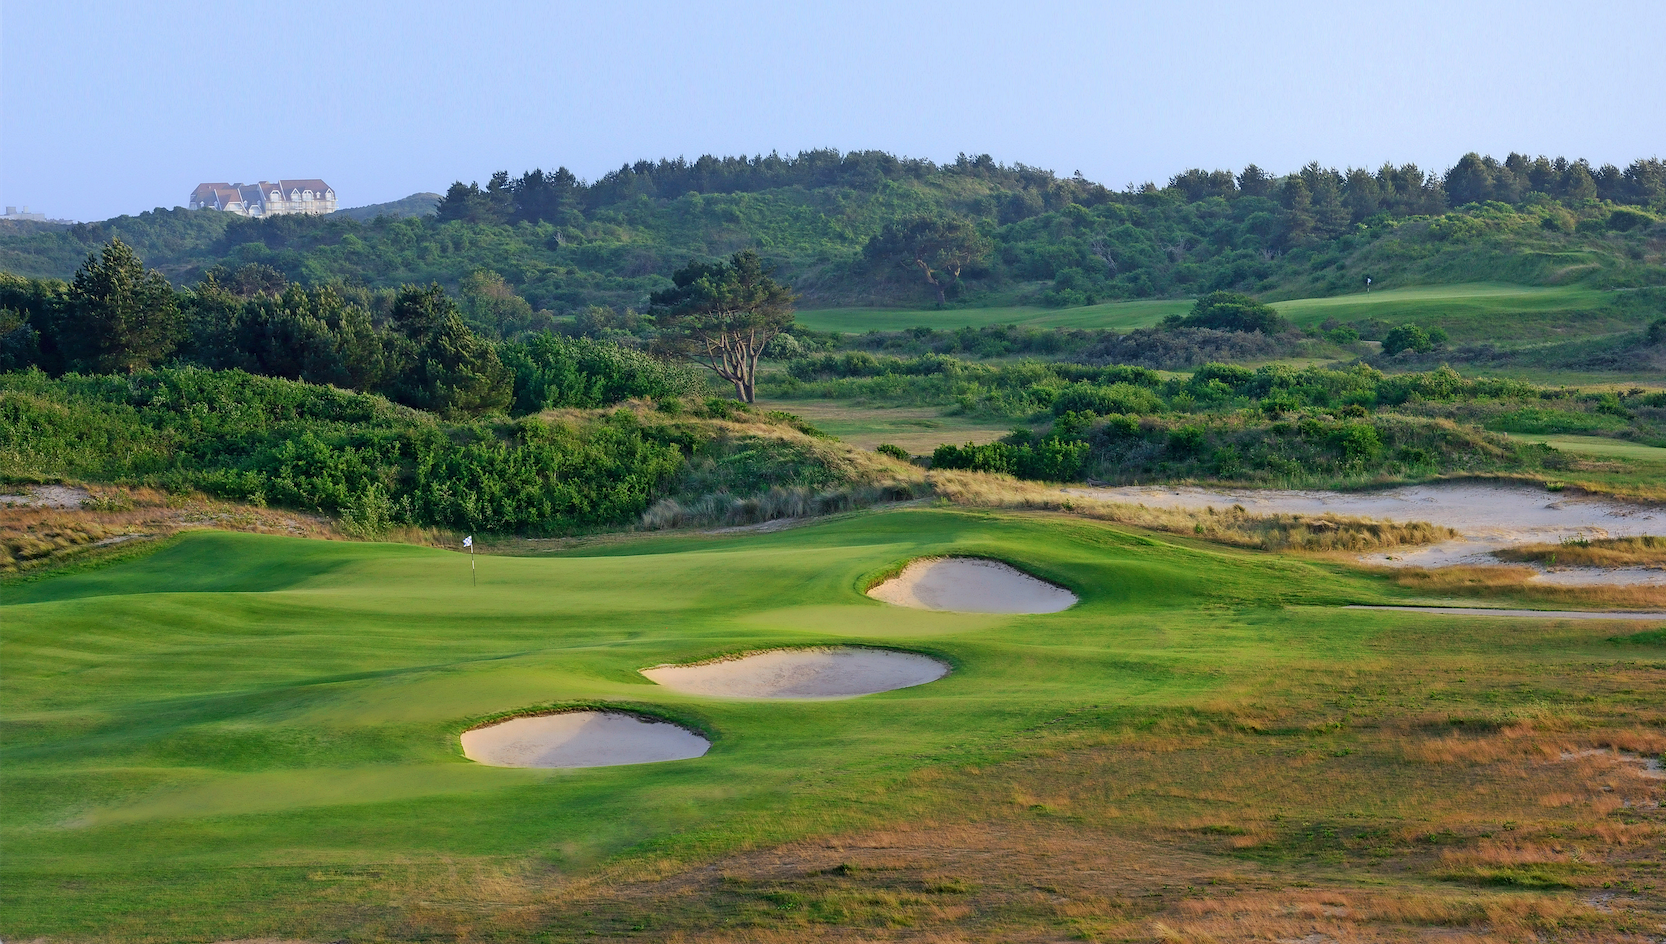 WIN a play-and-stay trip to Le Touquet sweepstakes